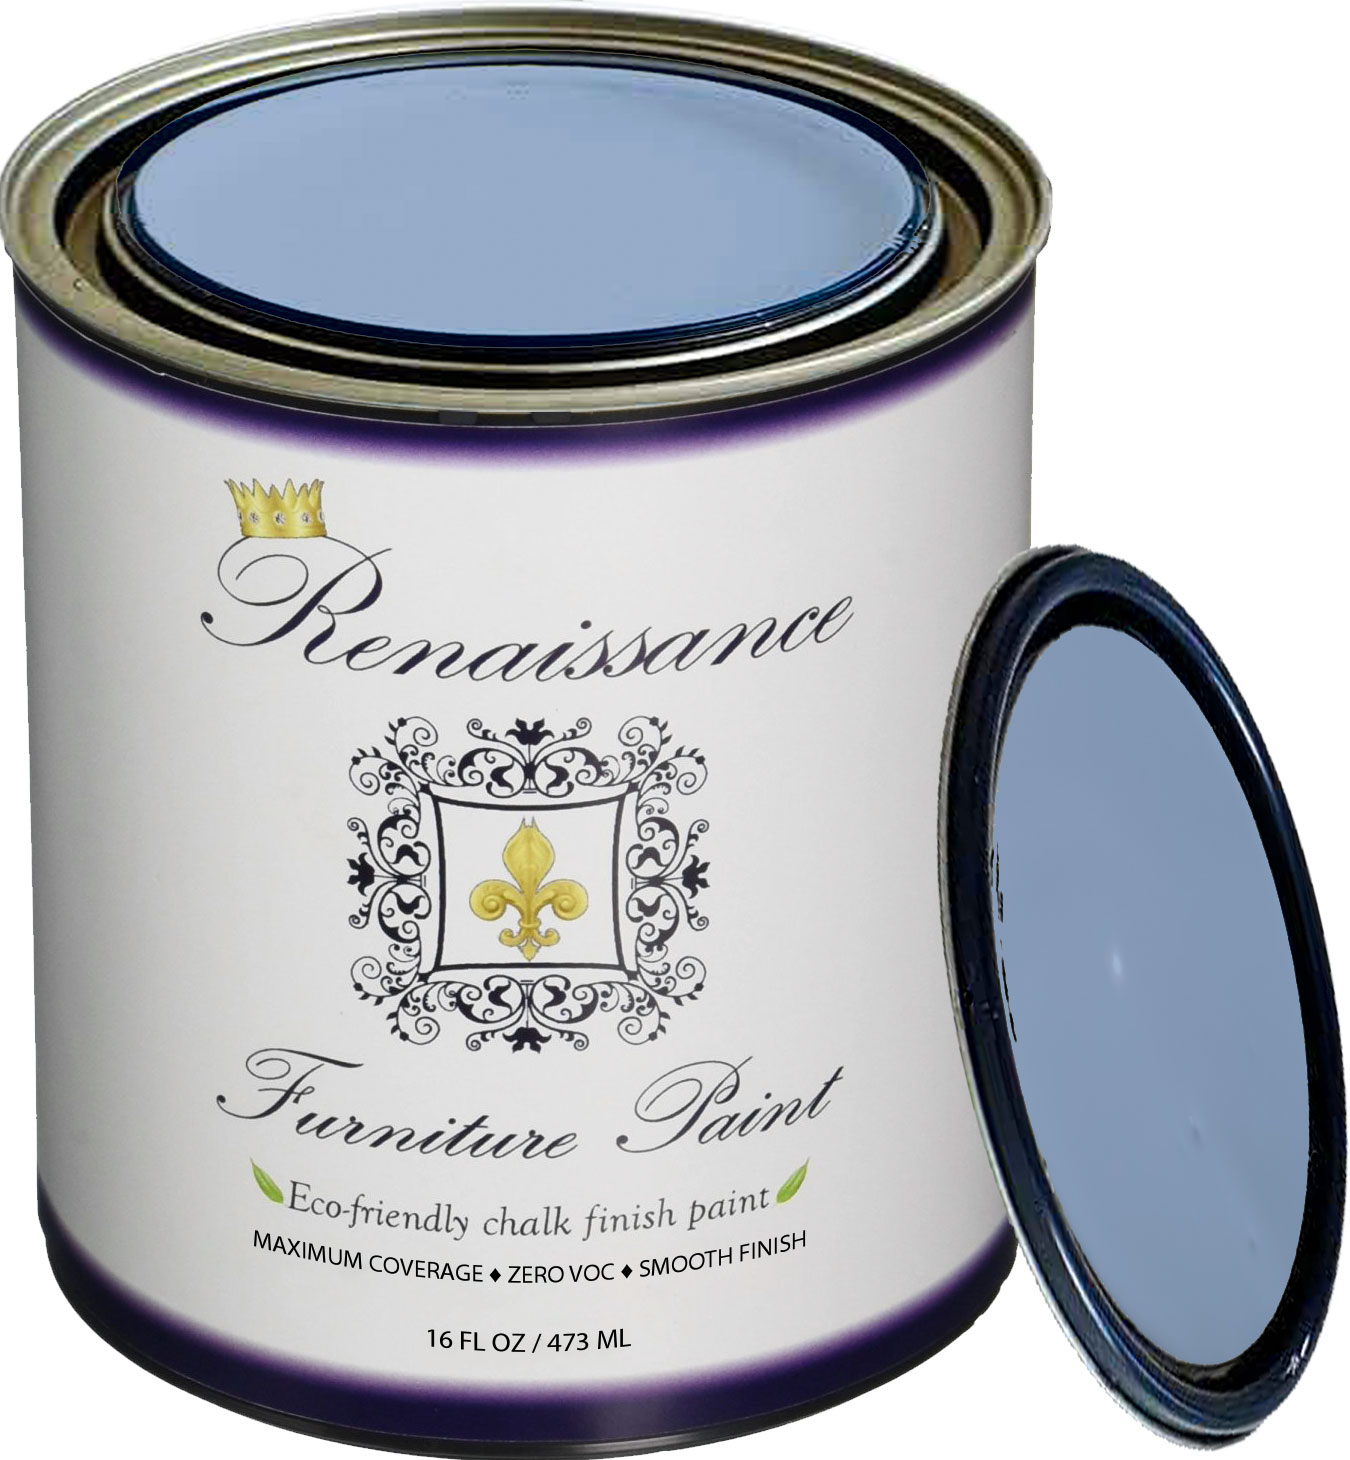 Renaissance Chalk Finish Paint - Azure Blue Pint (16oz) - Chalk Furniture & Cabinet Paint - Non Toxic, Eco-Friendly, Superior Coverage